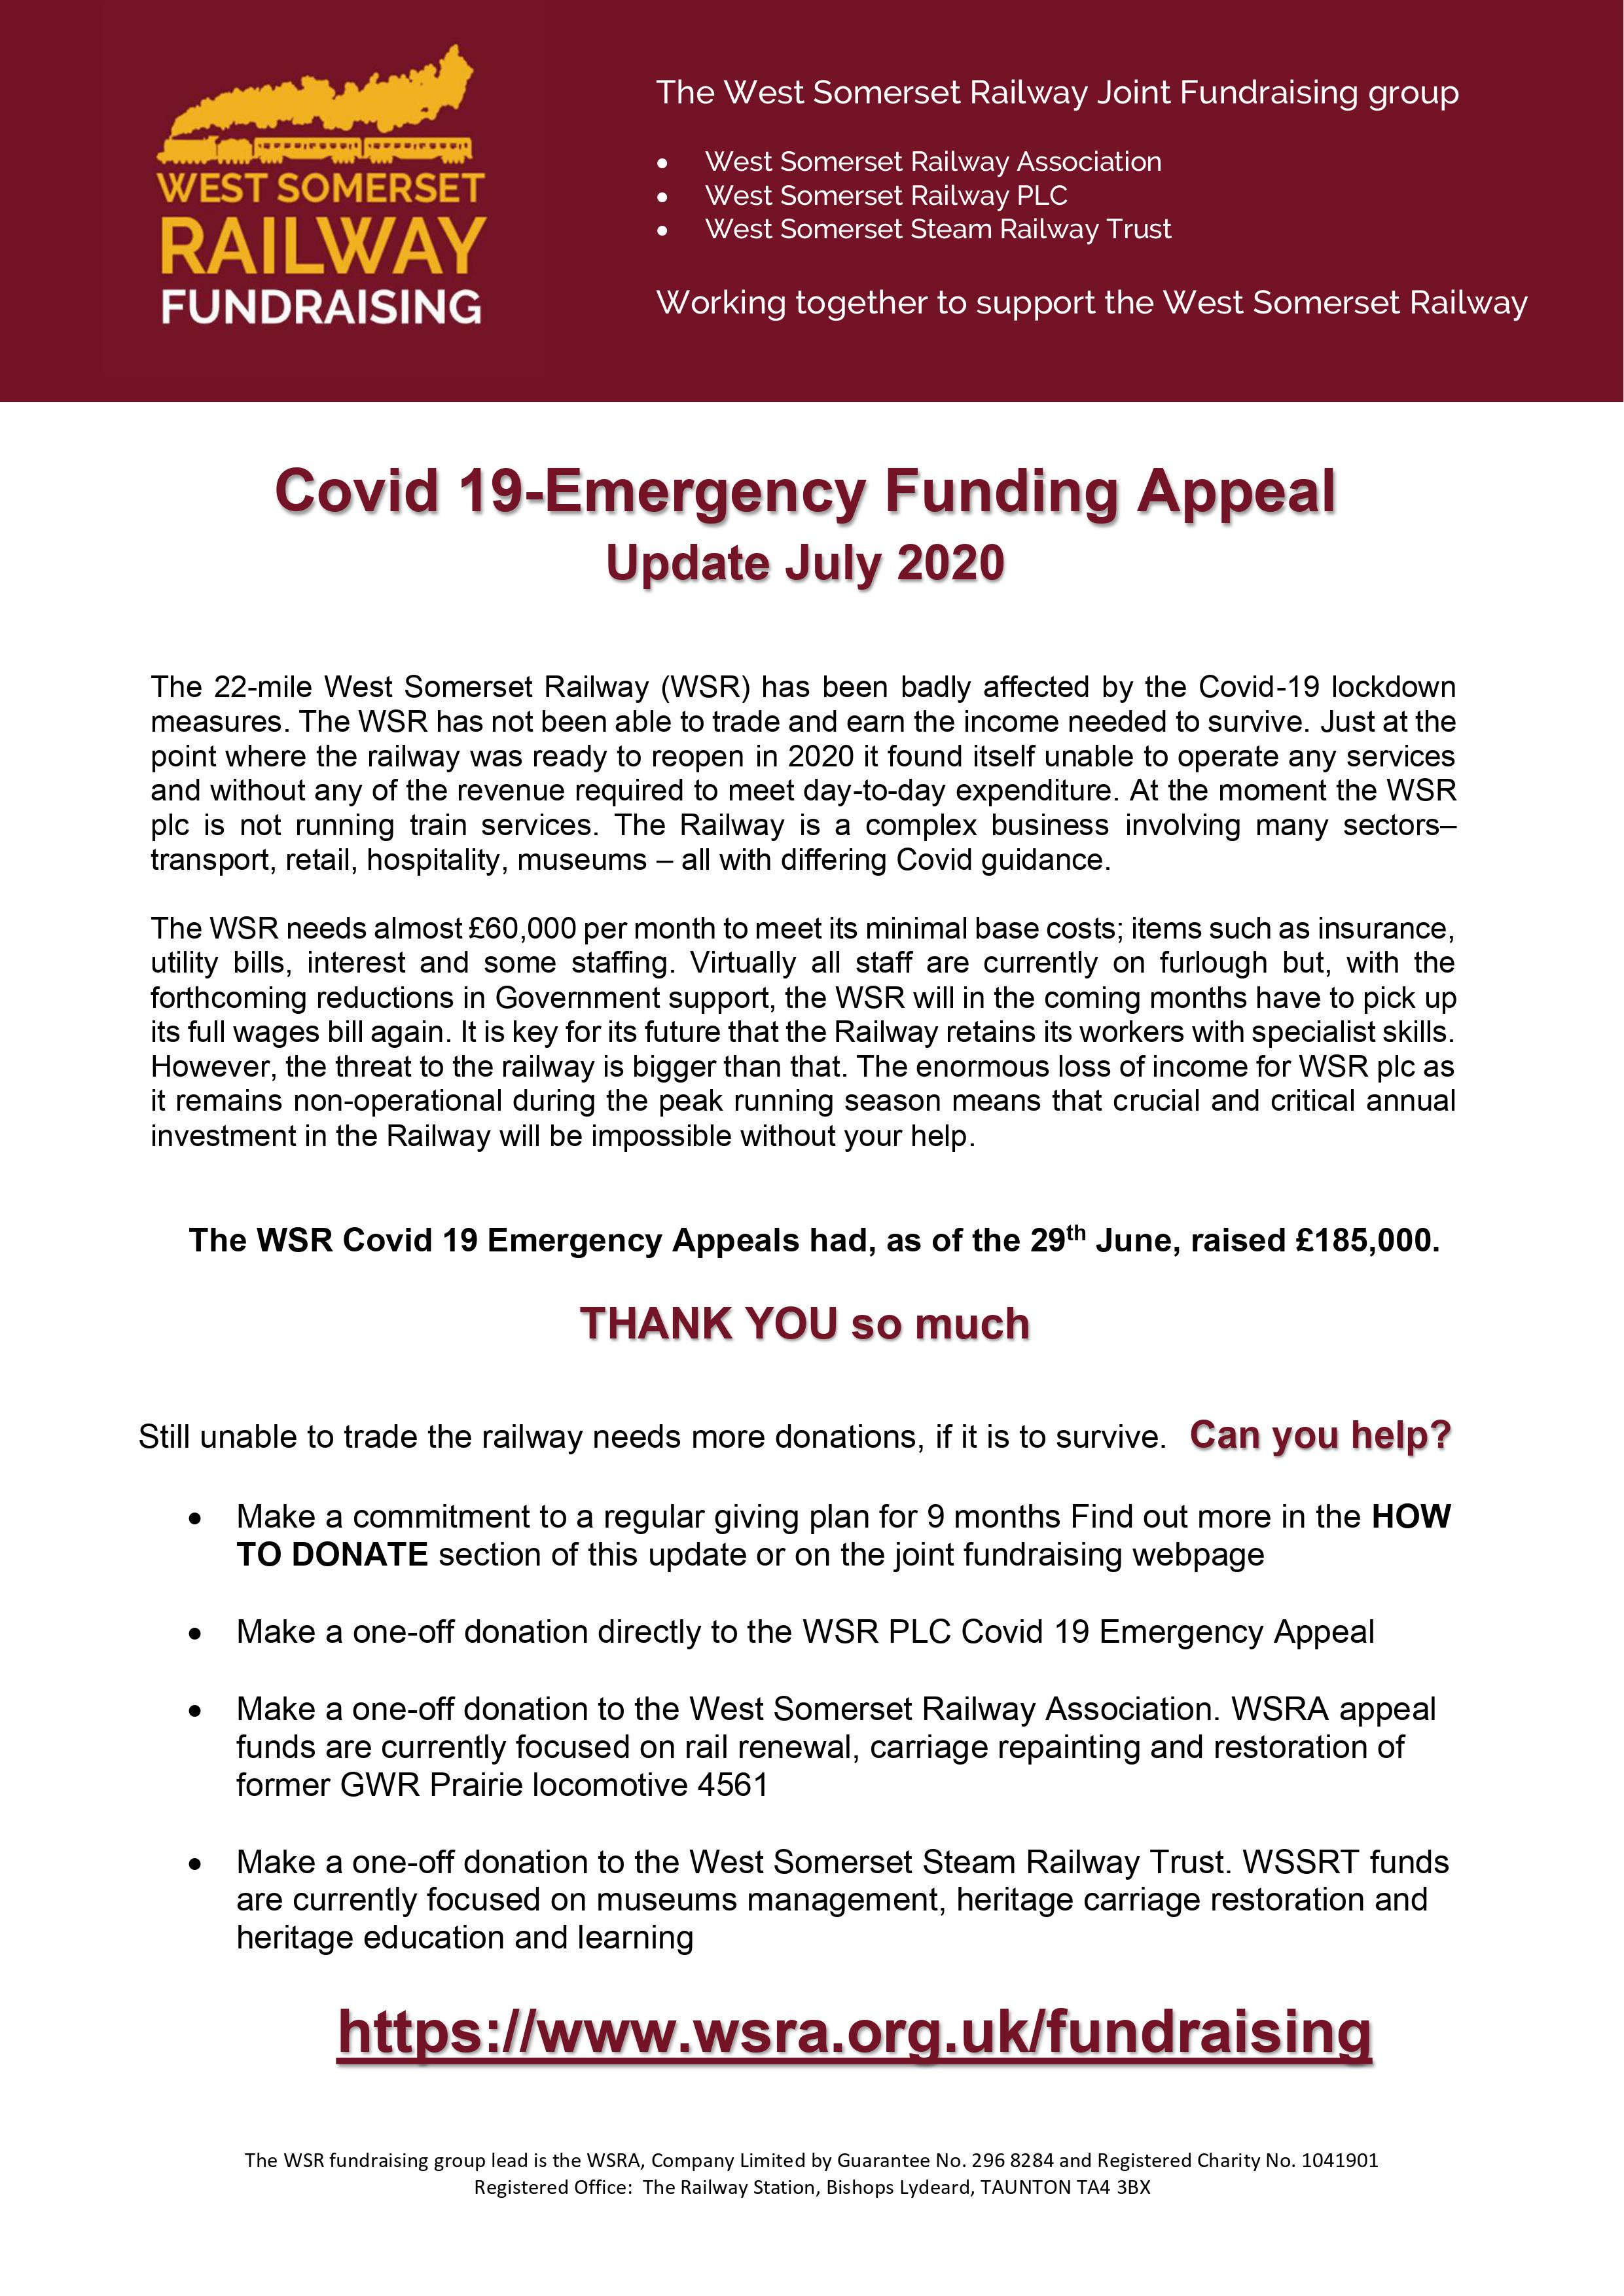 Joint Fundraising Appeal July 2020